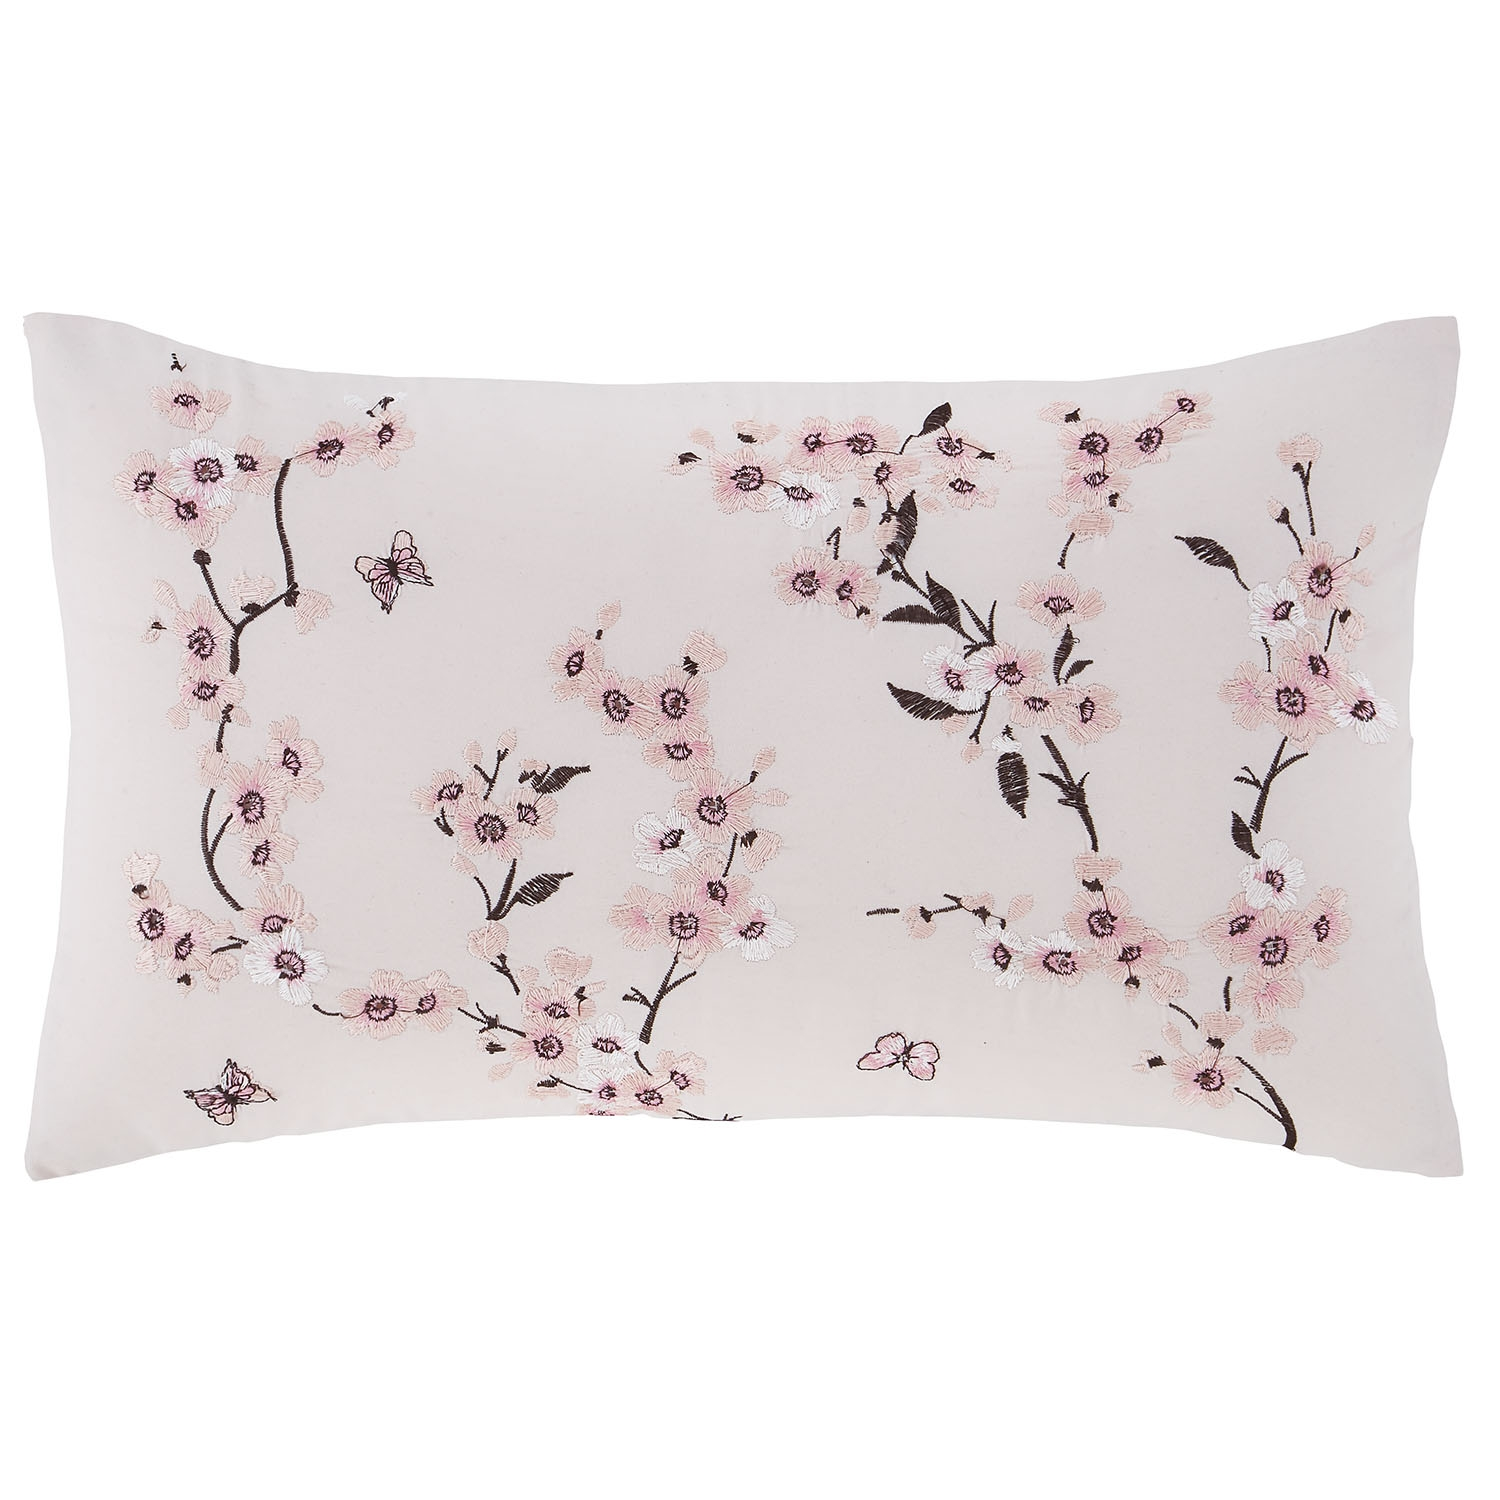 Image of Catherine Lansfield Embroidered Blossom Cushion, 30cm x 50cm, Pink